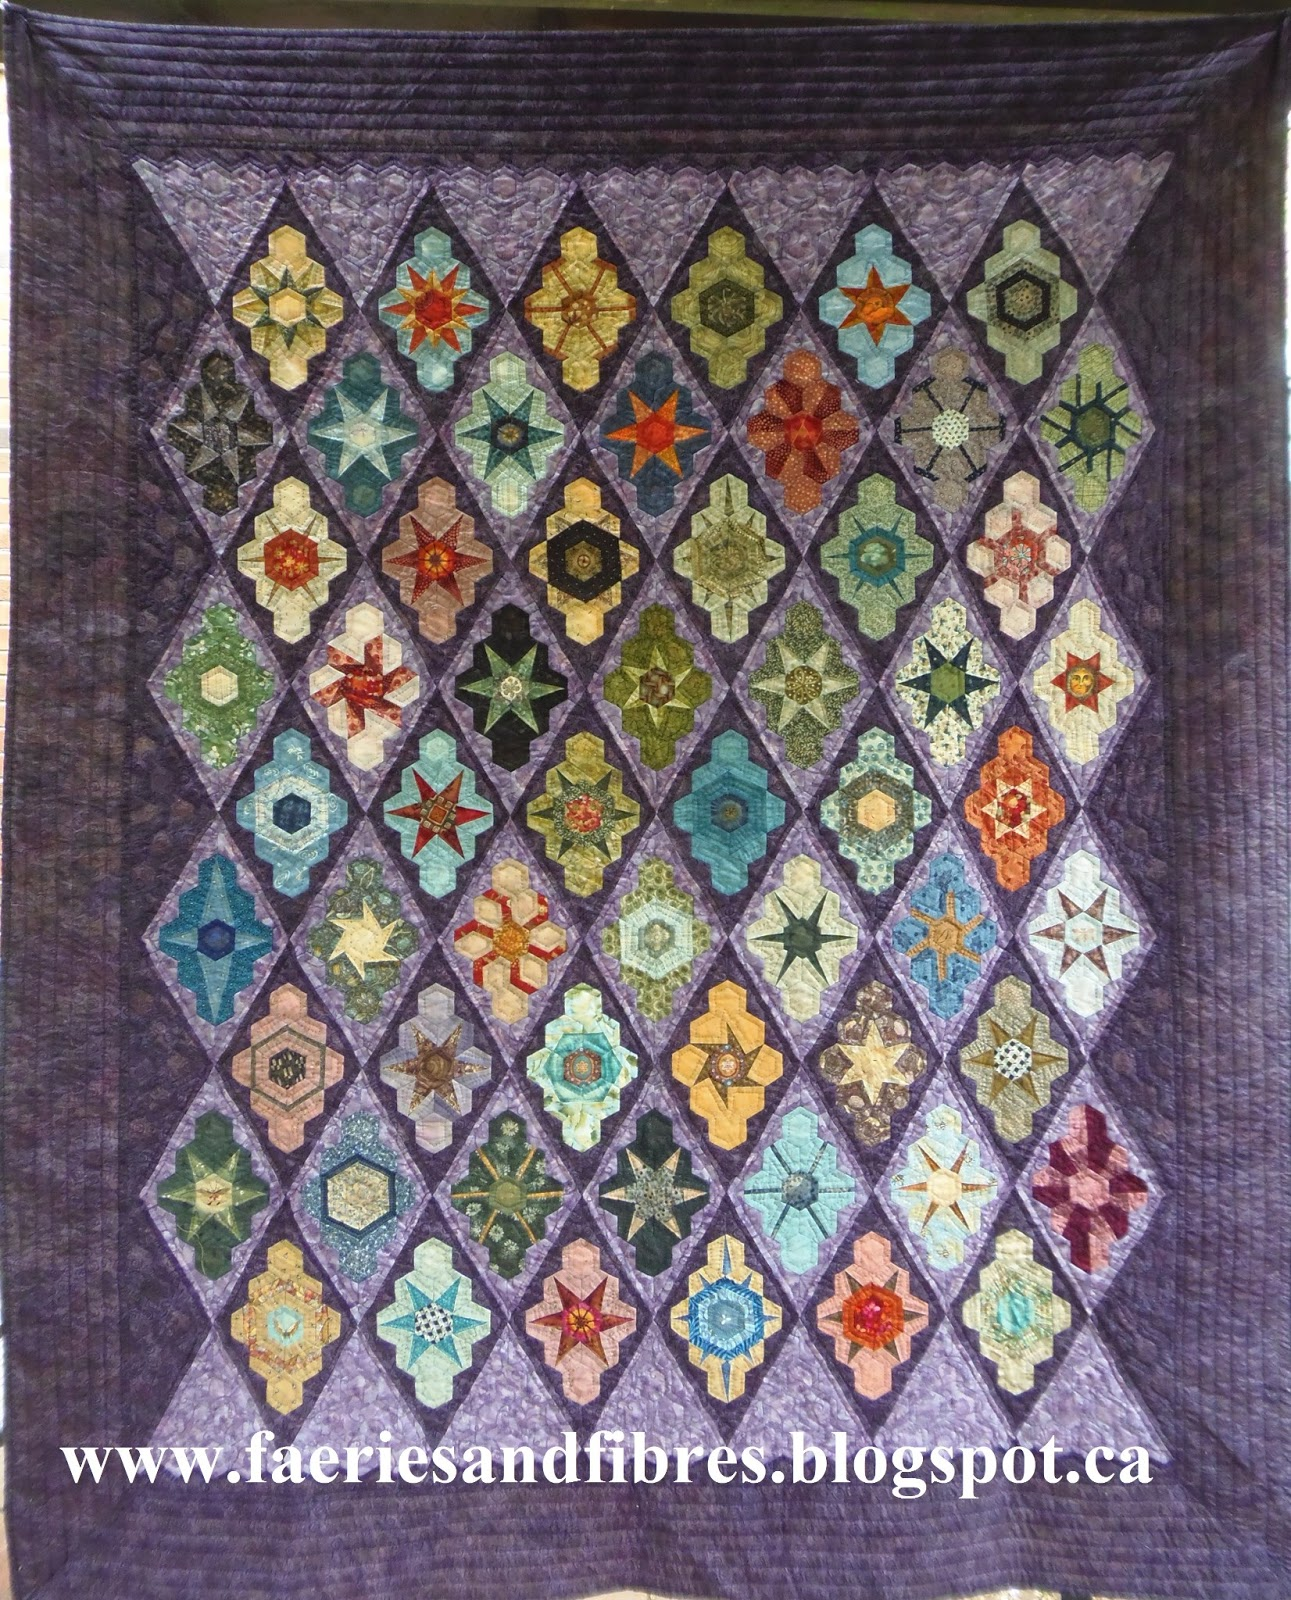 Free Quilt Pattern For Hexagon : Faeries and Fibres: Cherry Blossom Quilt pattern, hexagon fun and three more nine patches